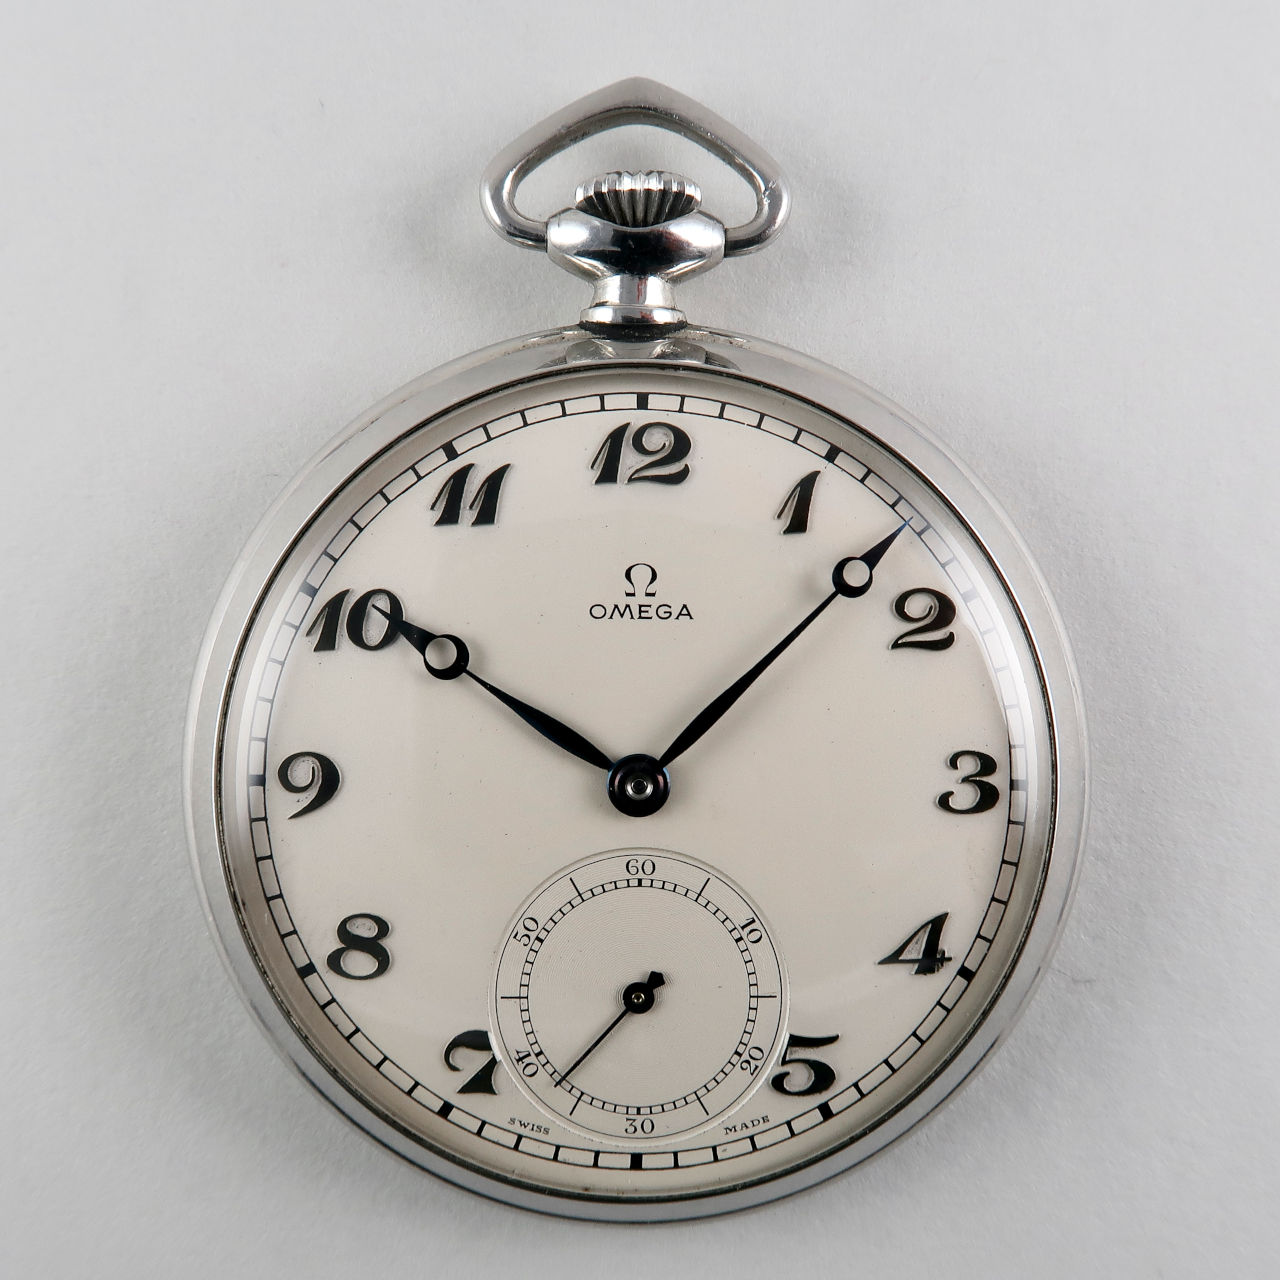 Omega cal.38.5L T1 circa 1938 | steel hand wound vintage pocket watch